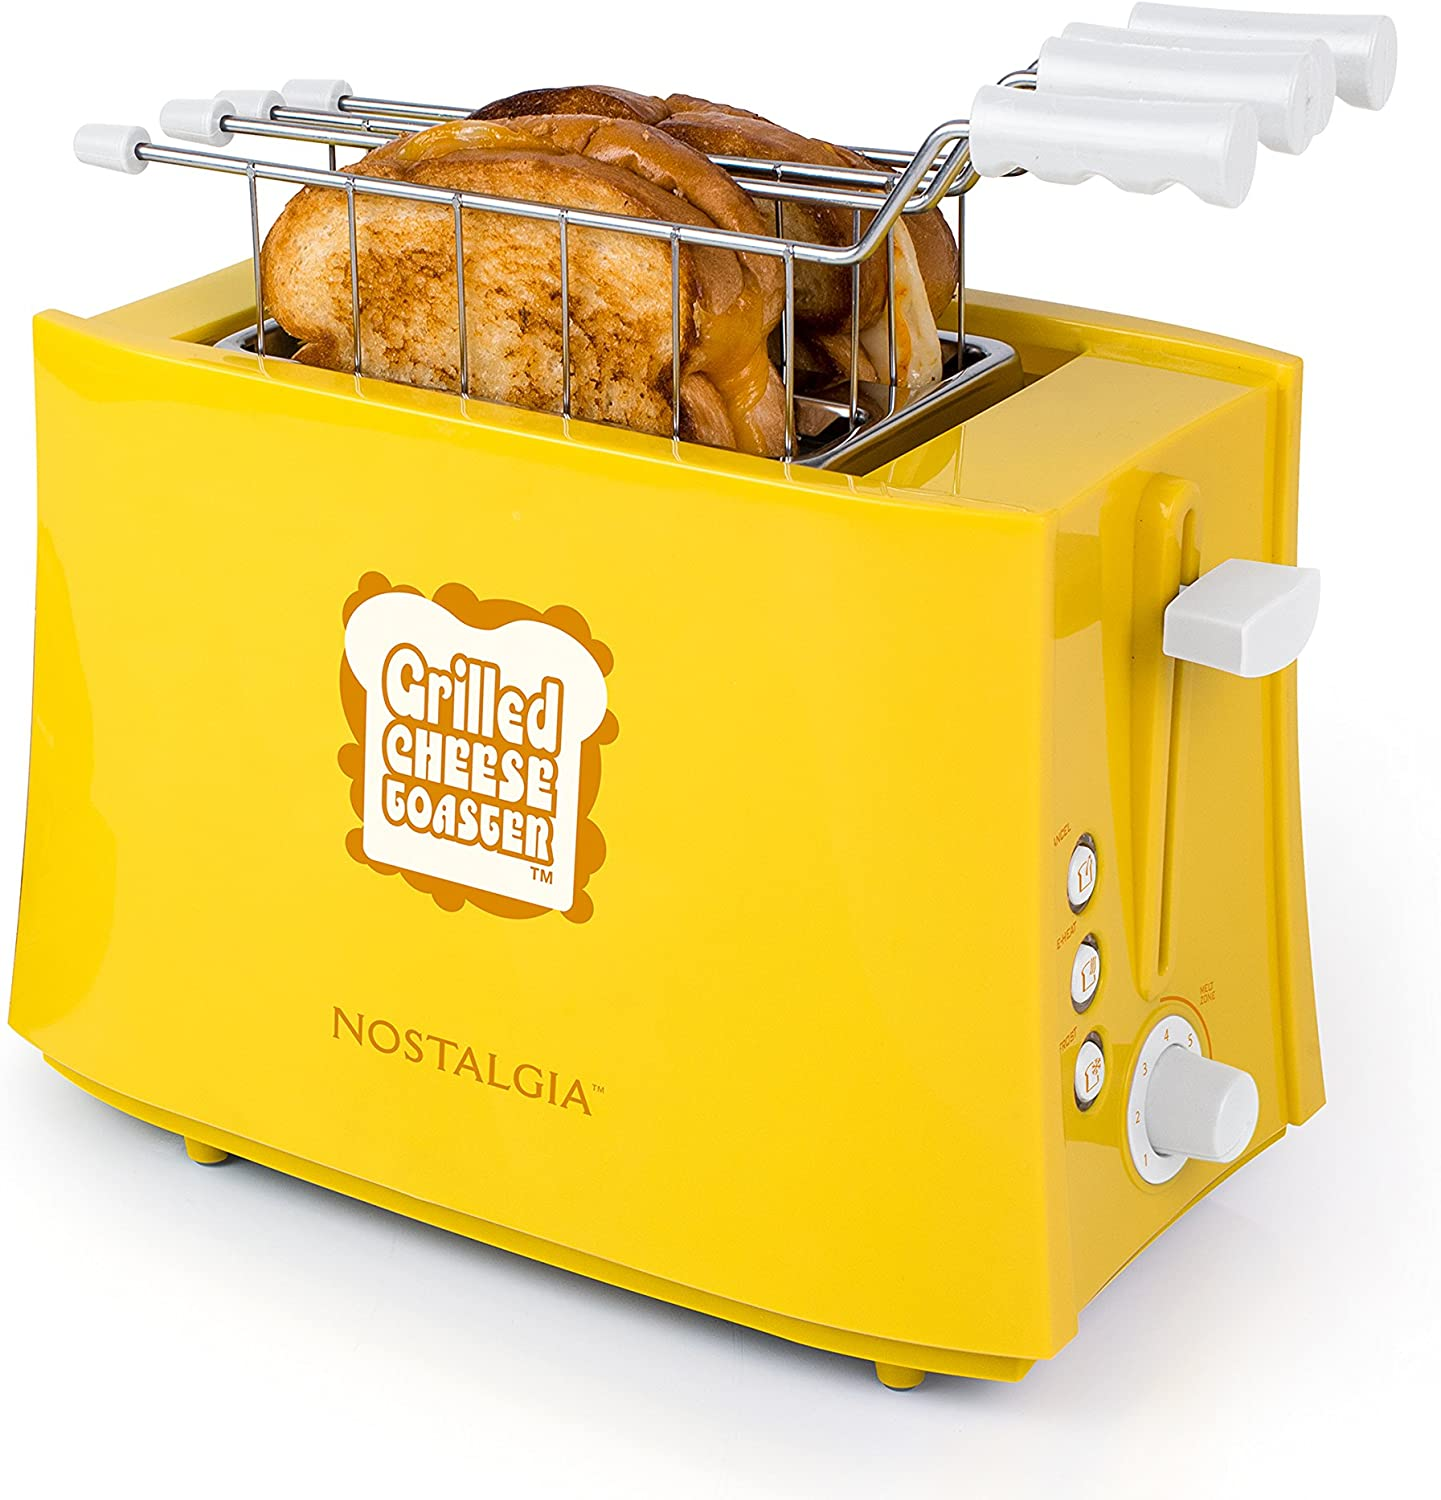 Nostalgia TCS2 Grilled Cheese Toaster